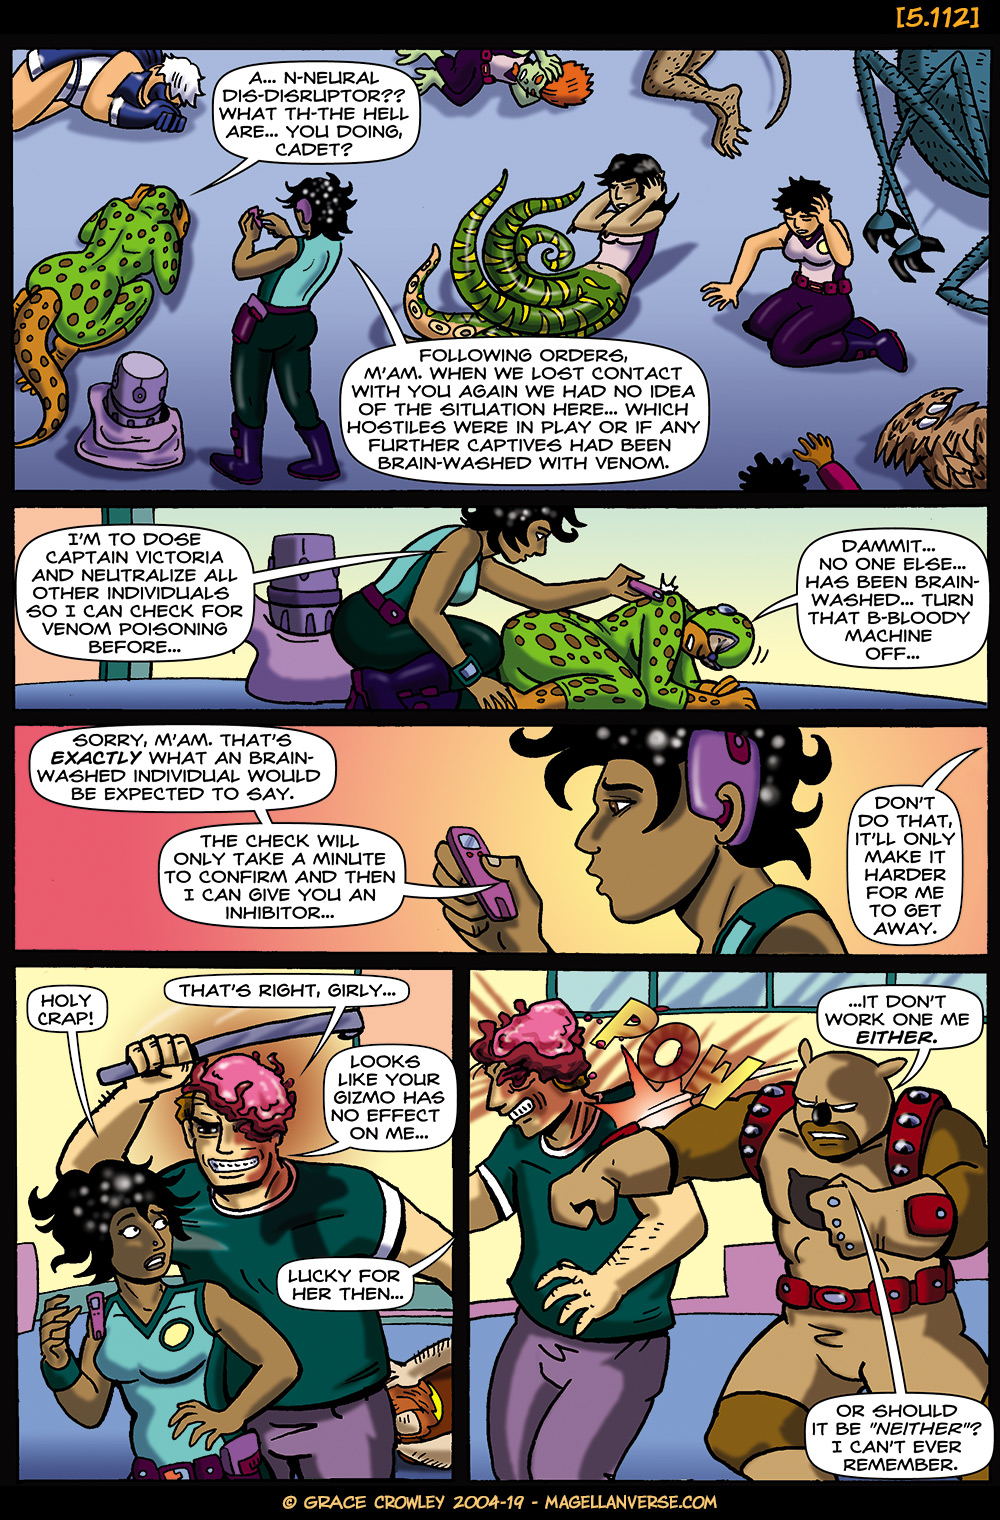 Page 5.112